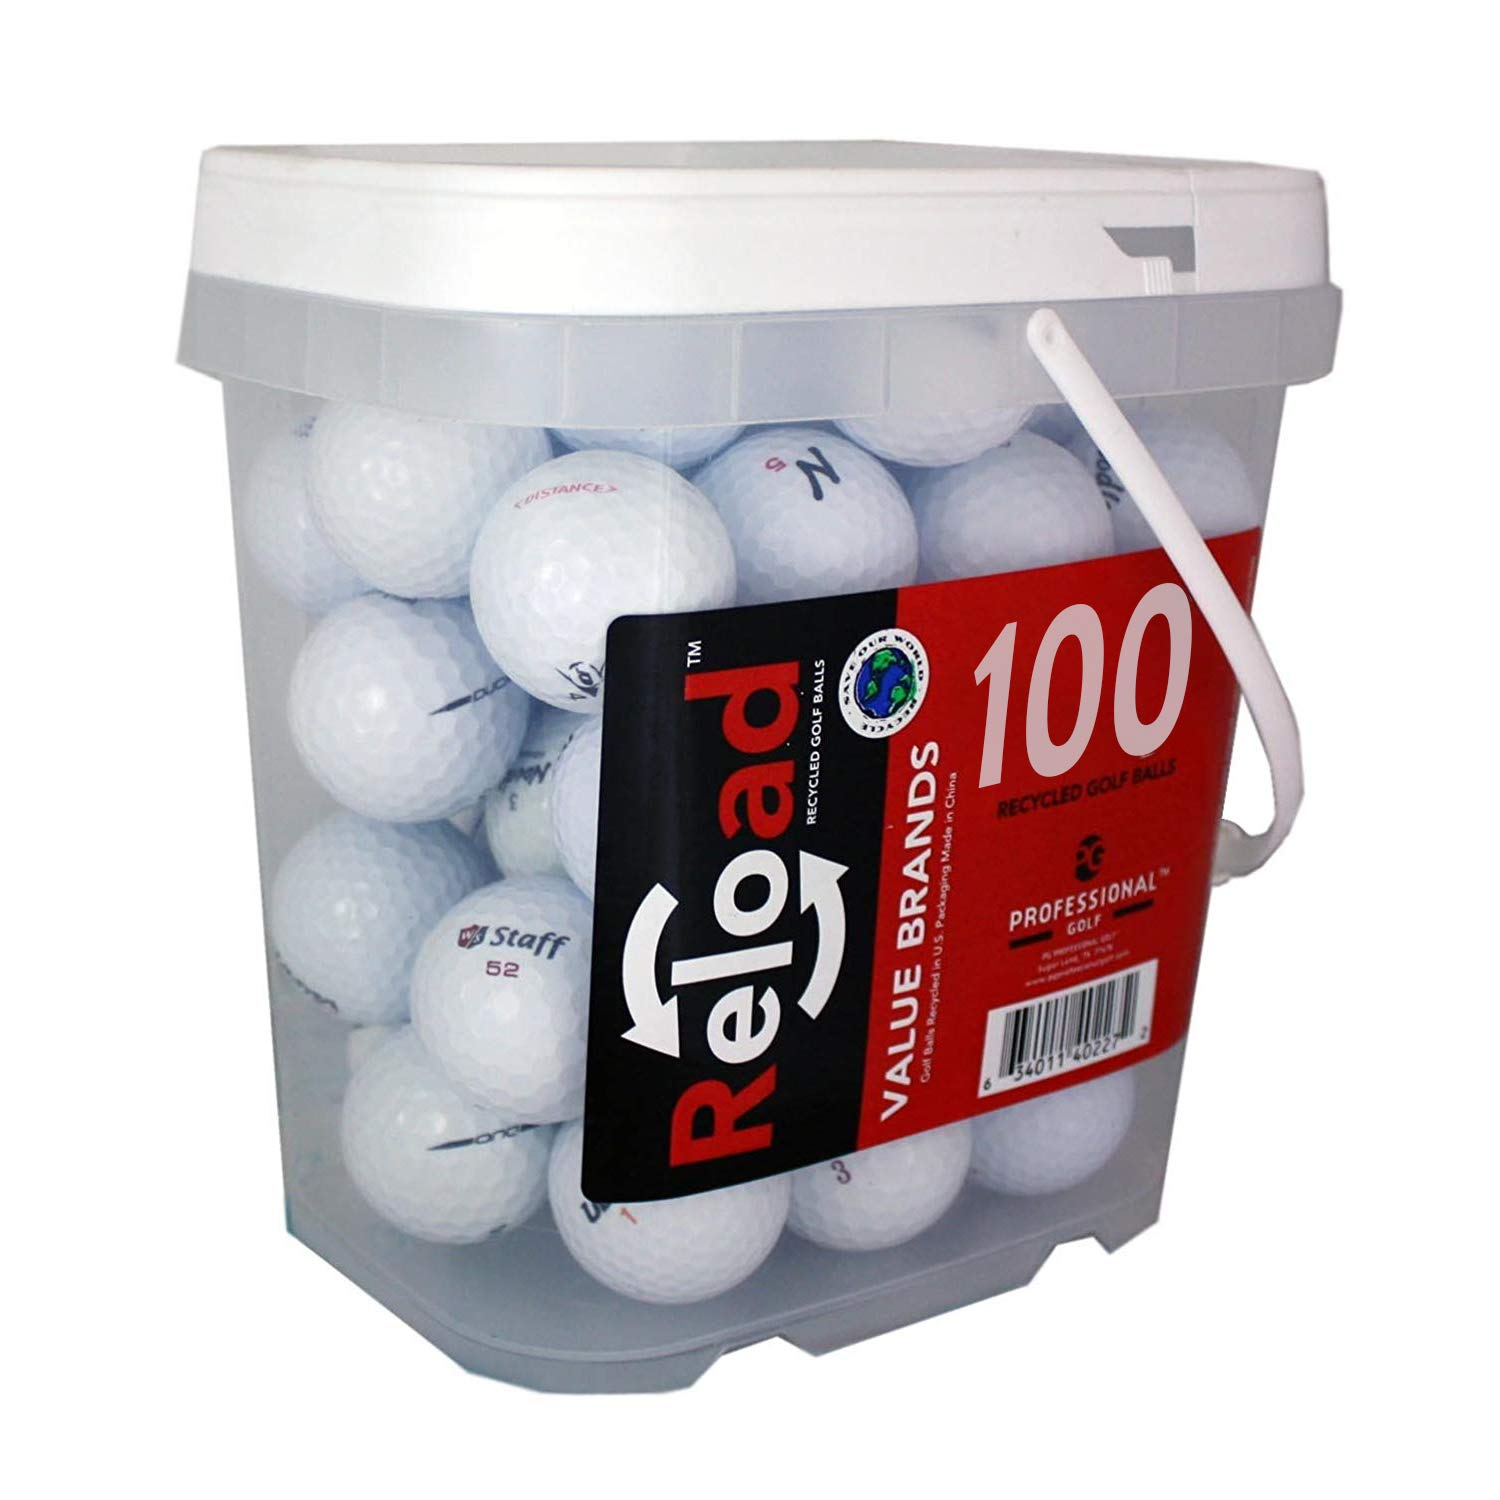 100 Golf Ball Mix - Value Styles - Pack color may vary by Reload Recycled Golf Balls